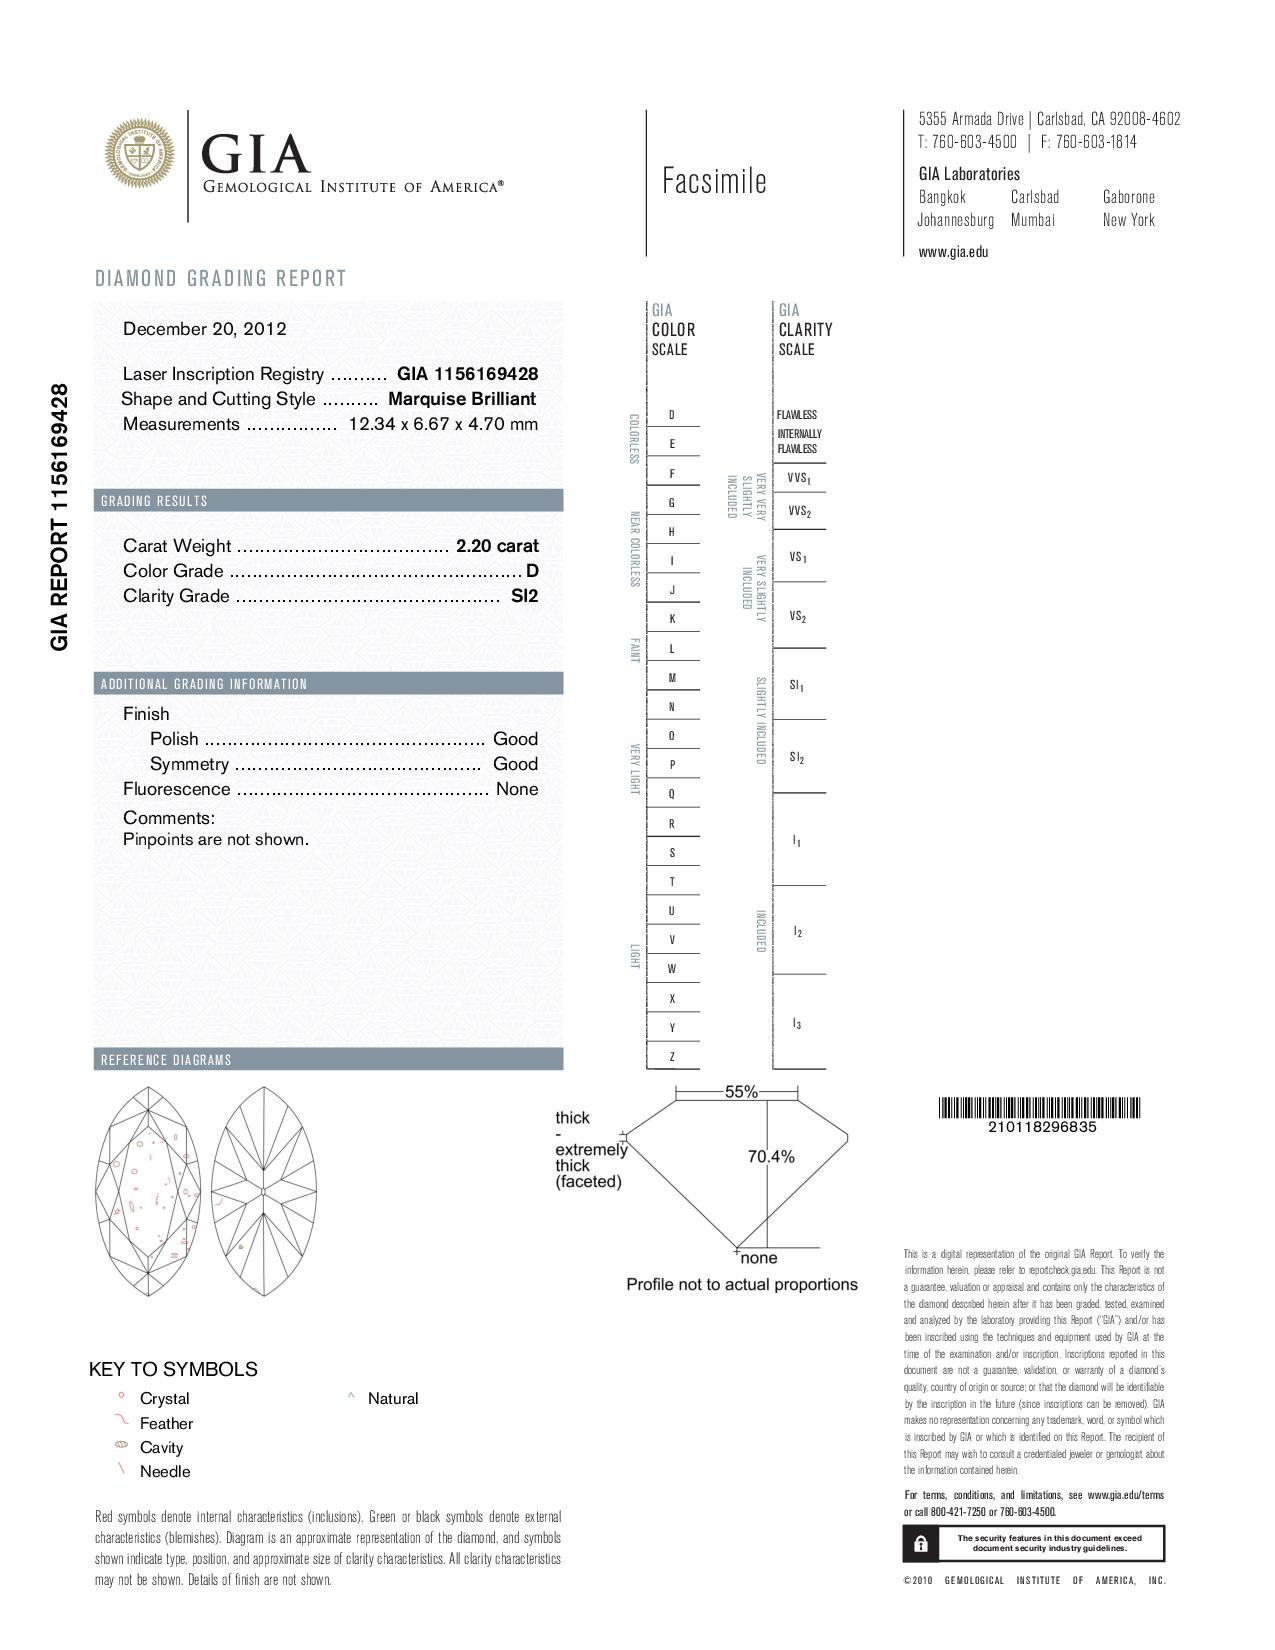 This is a 2.20 carat marquise shape, D color, SI2 clarity natural diamond accompanied by a GIA grading report.